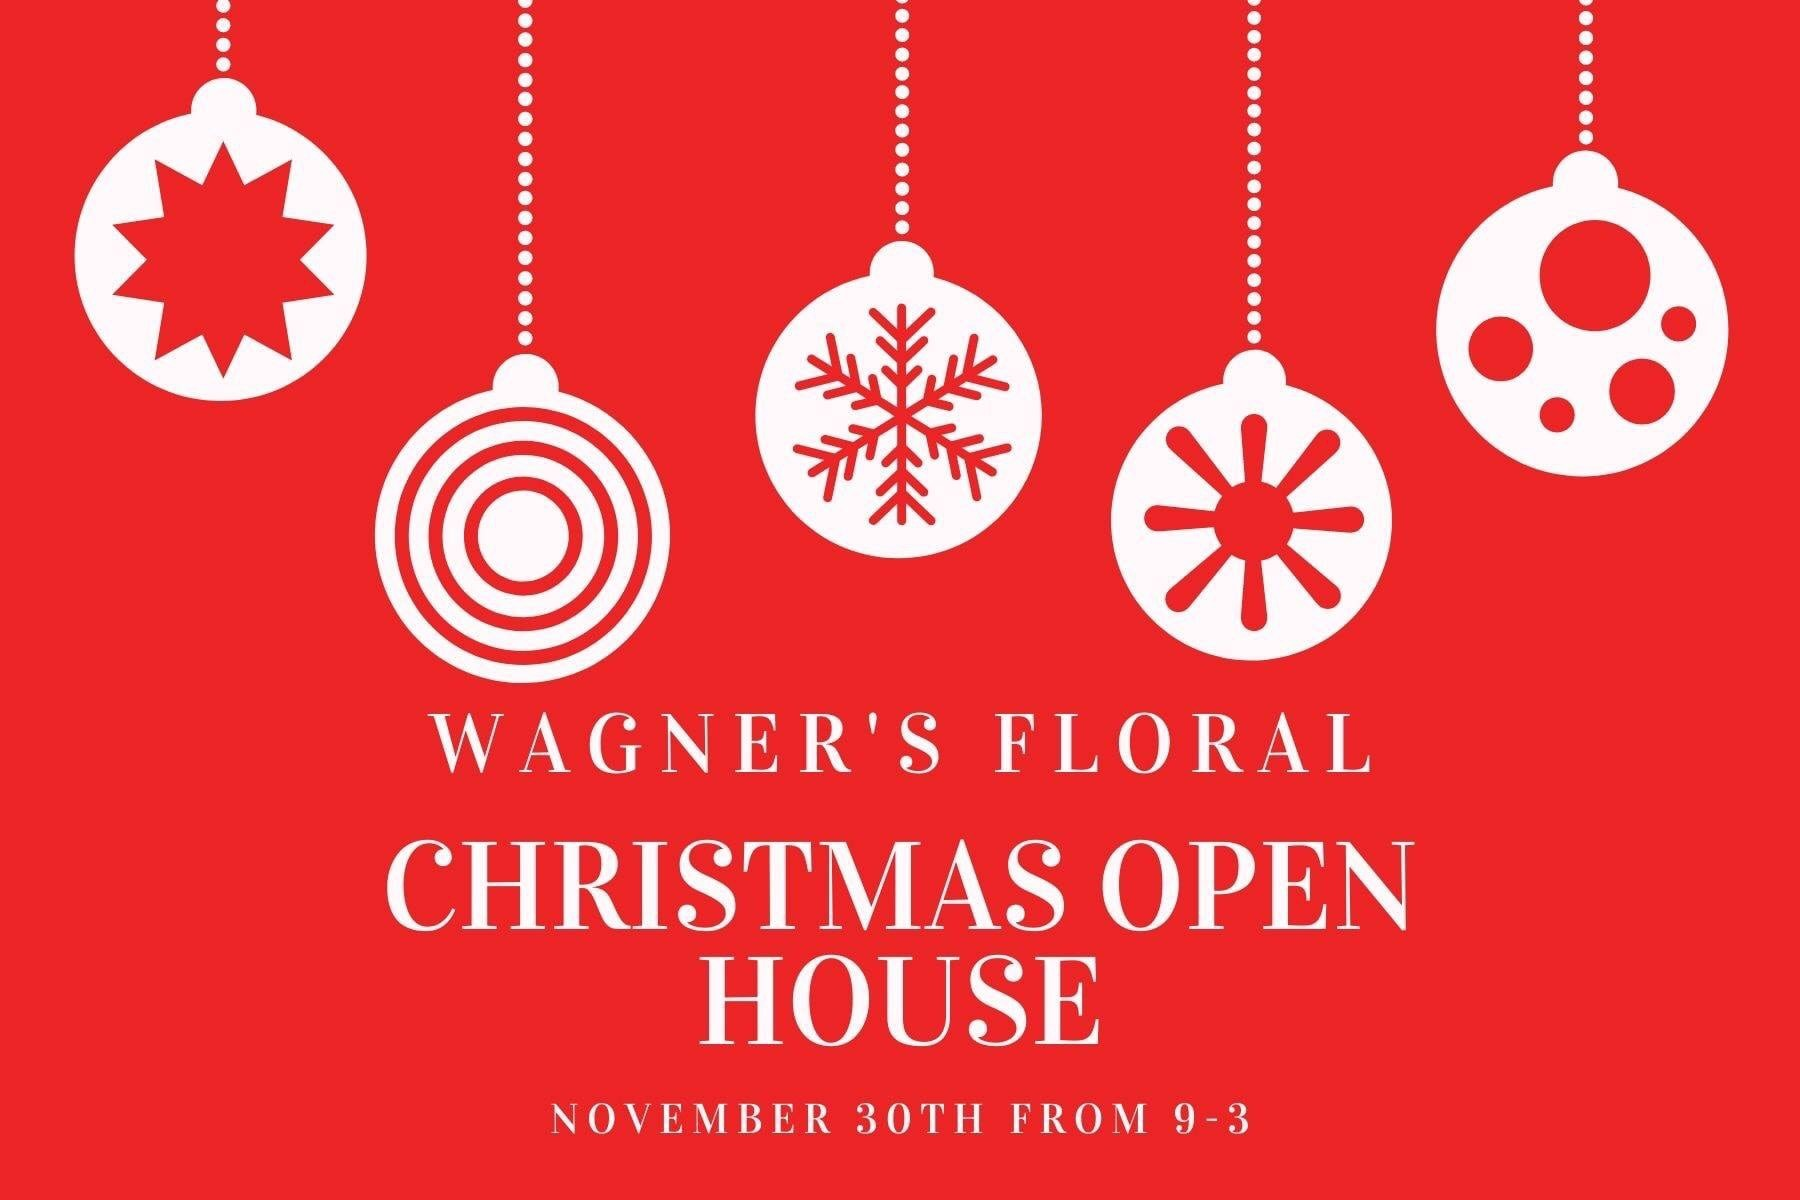 Wagner's Floral Christmas Open House Photo